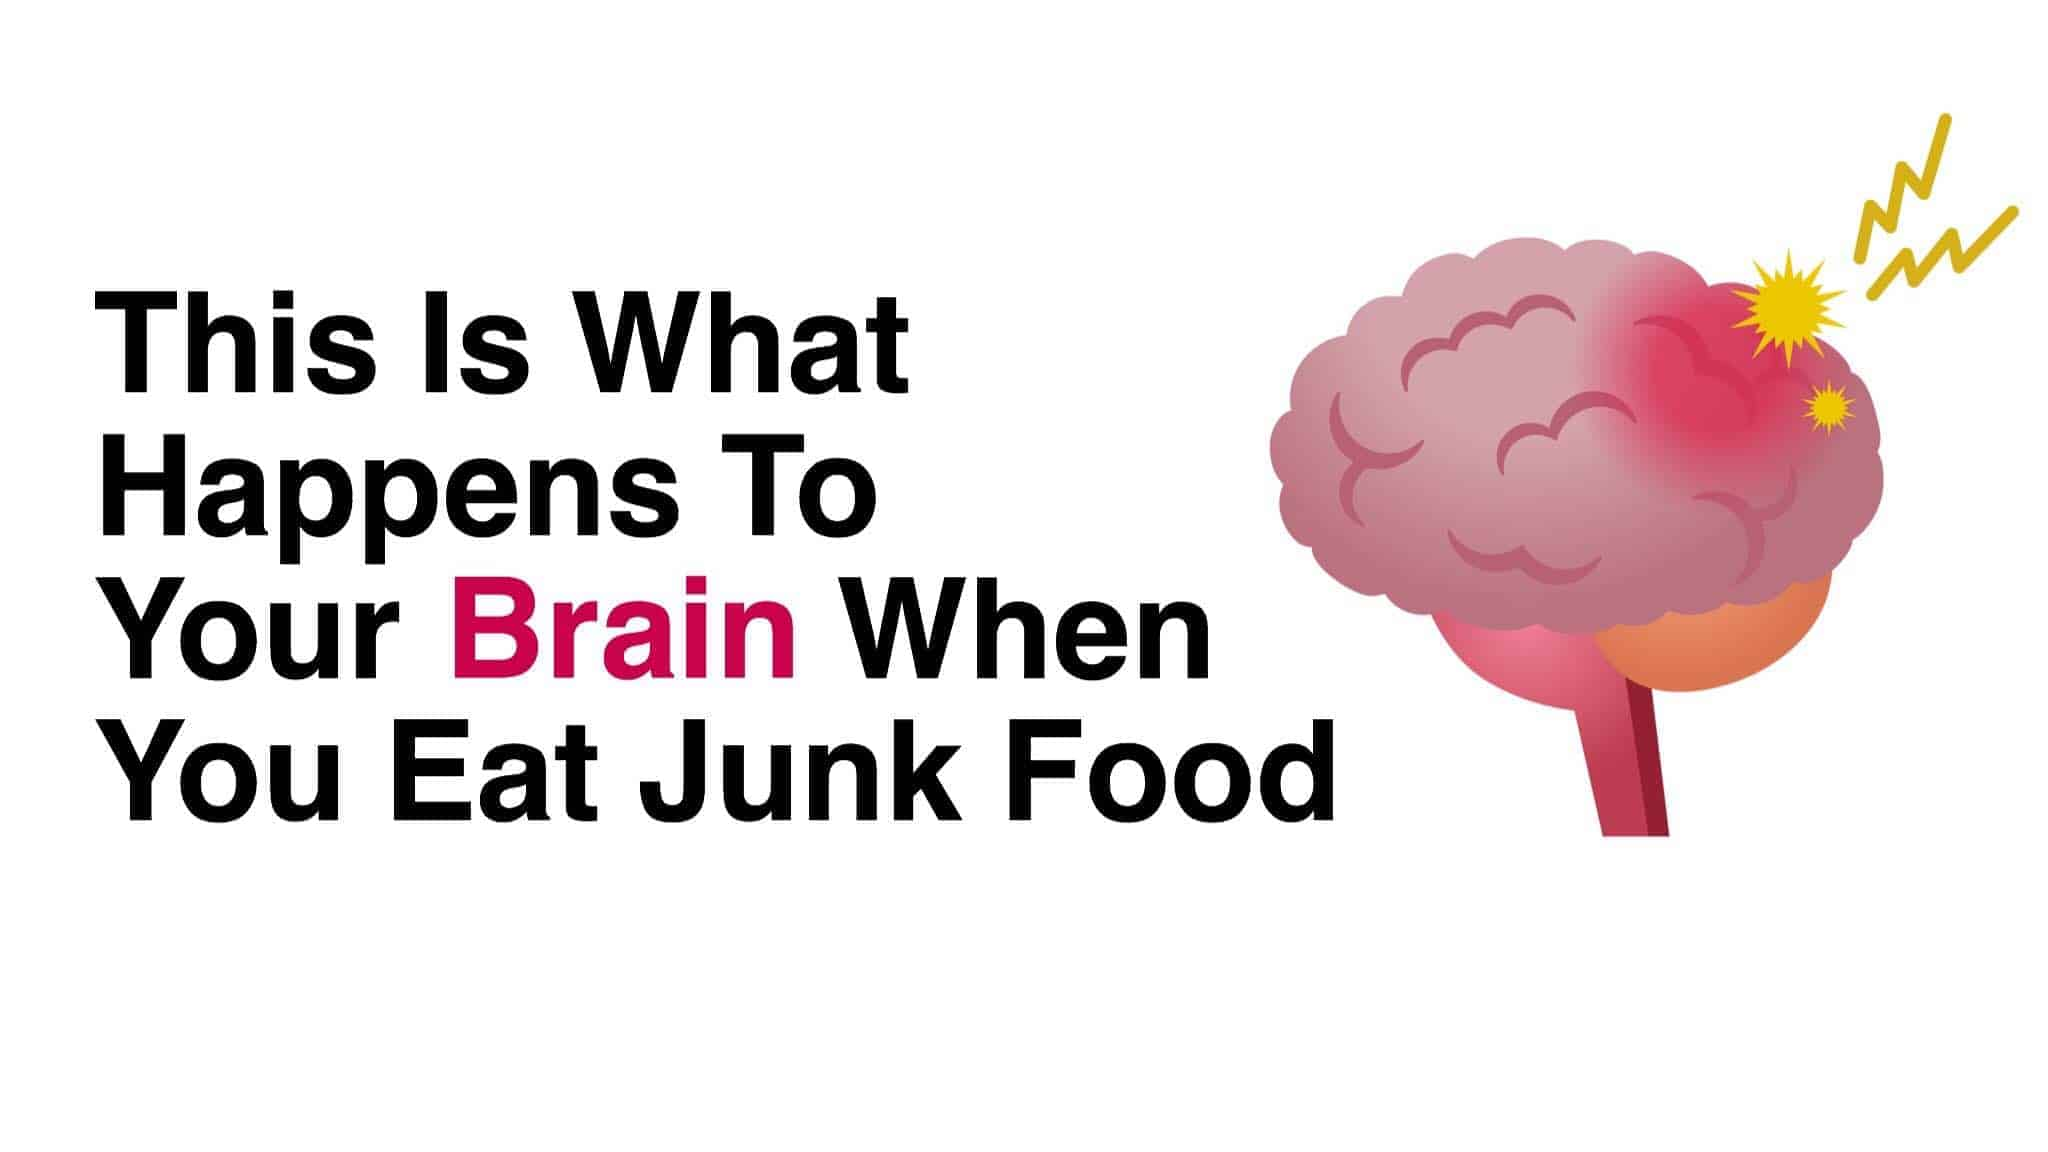 Your Brain On Junk Food